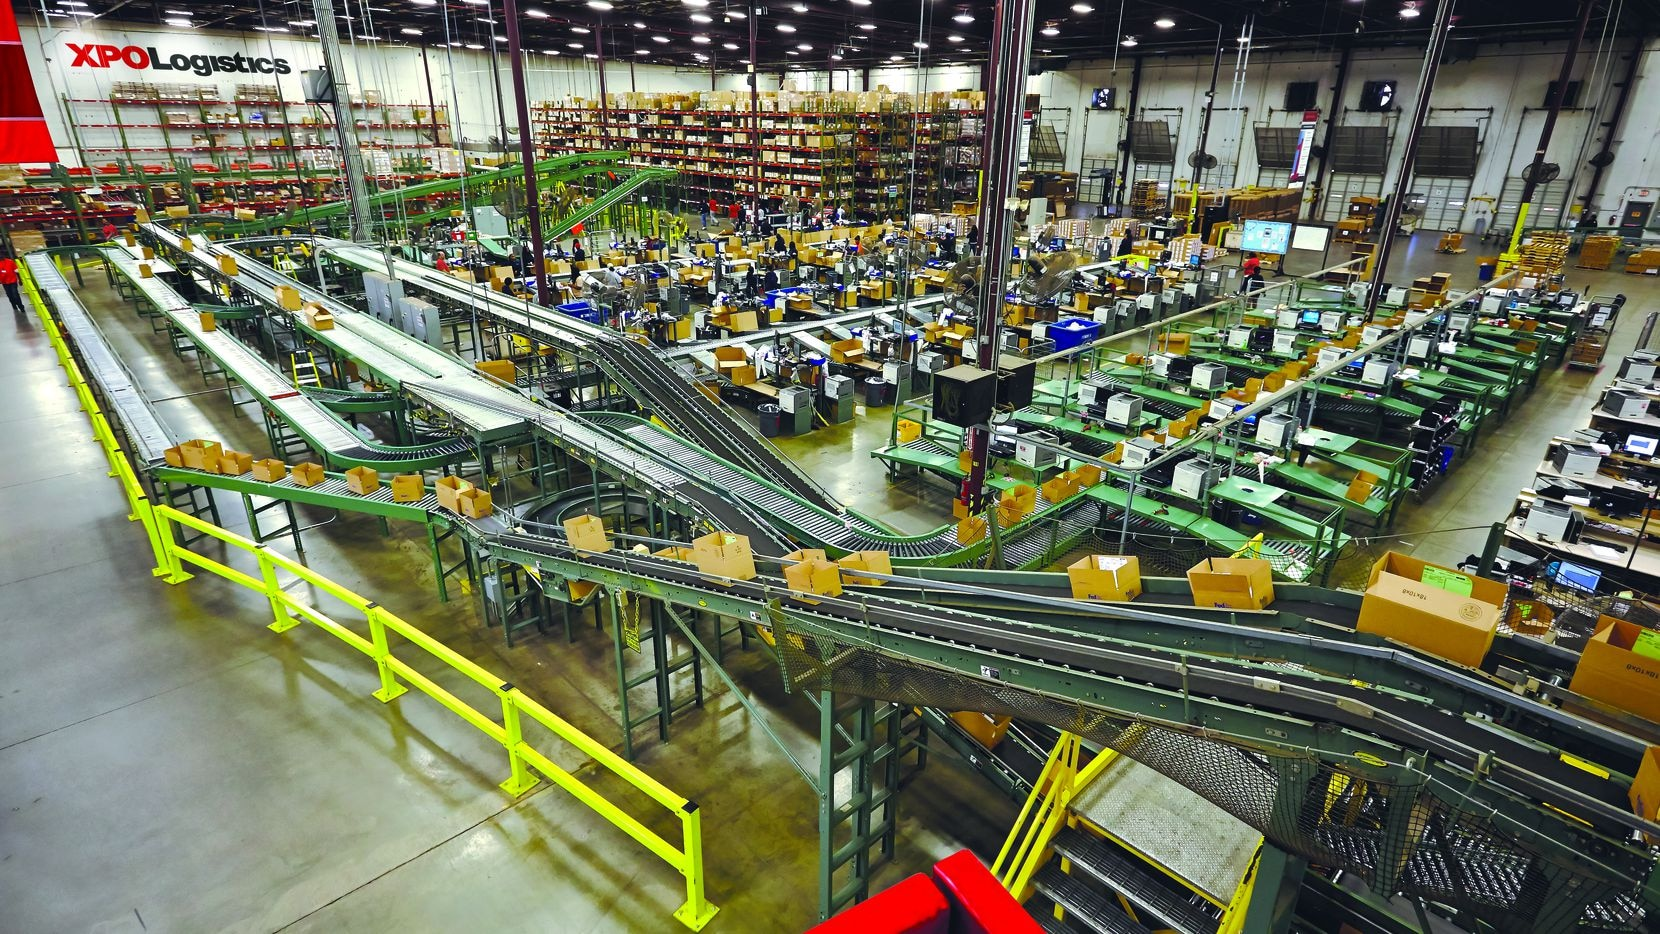 One of XPO Logistics' supply chain warehouses.